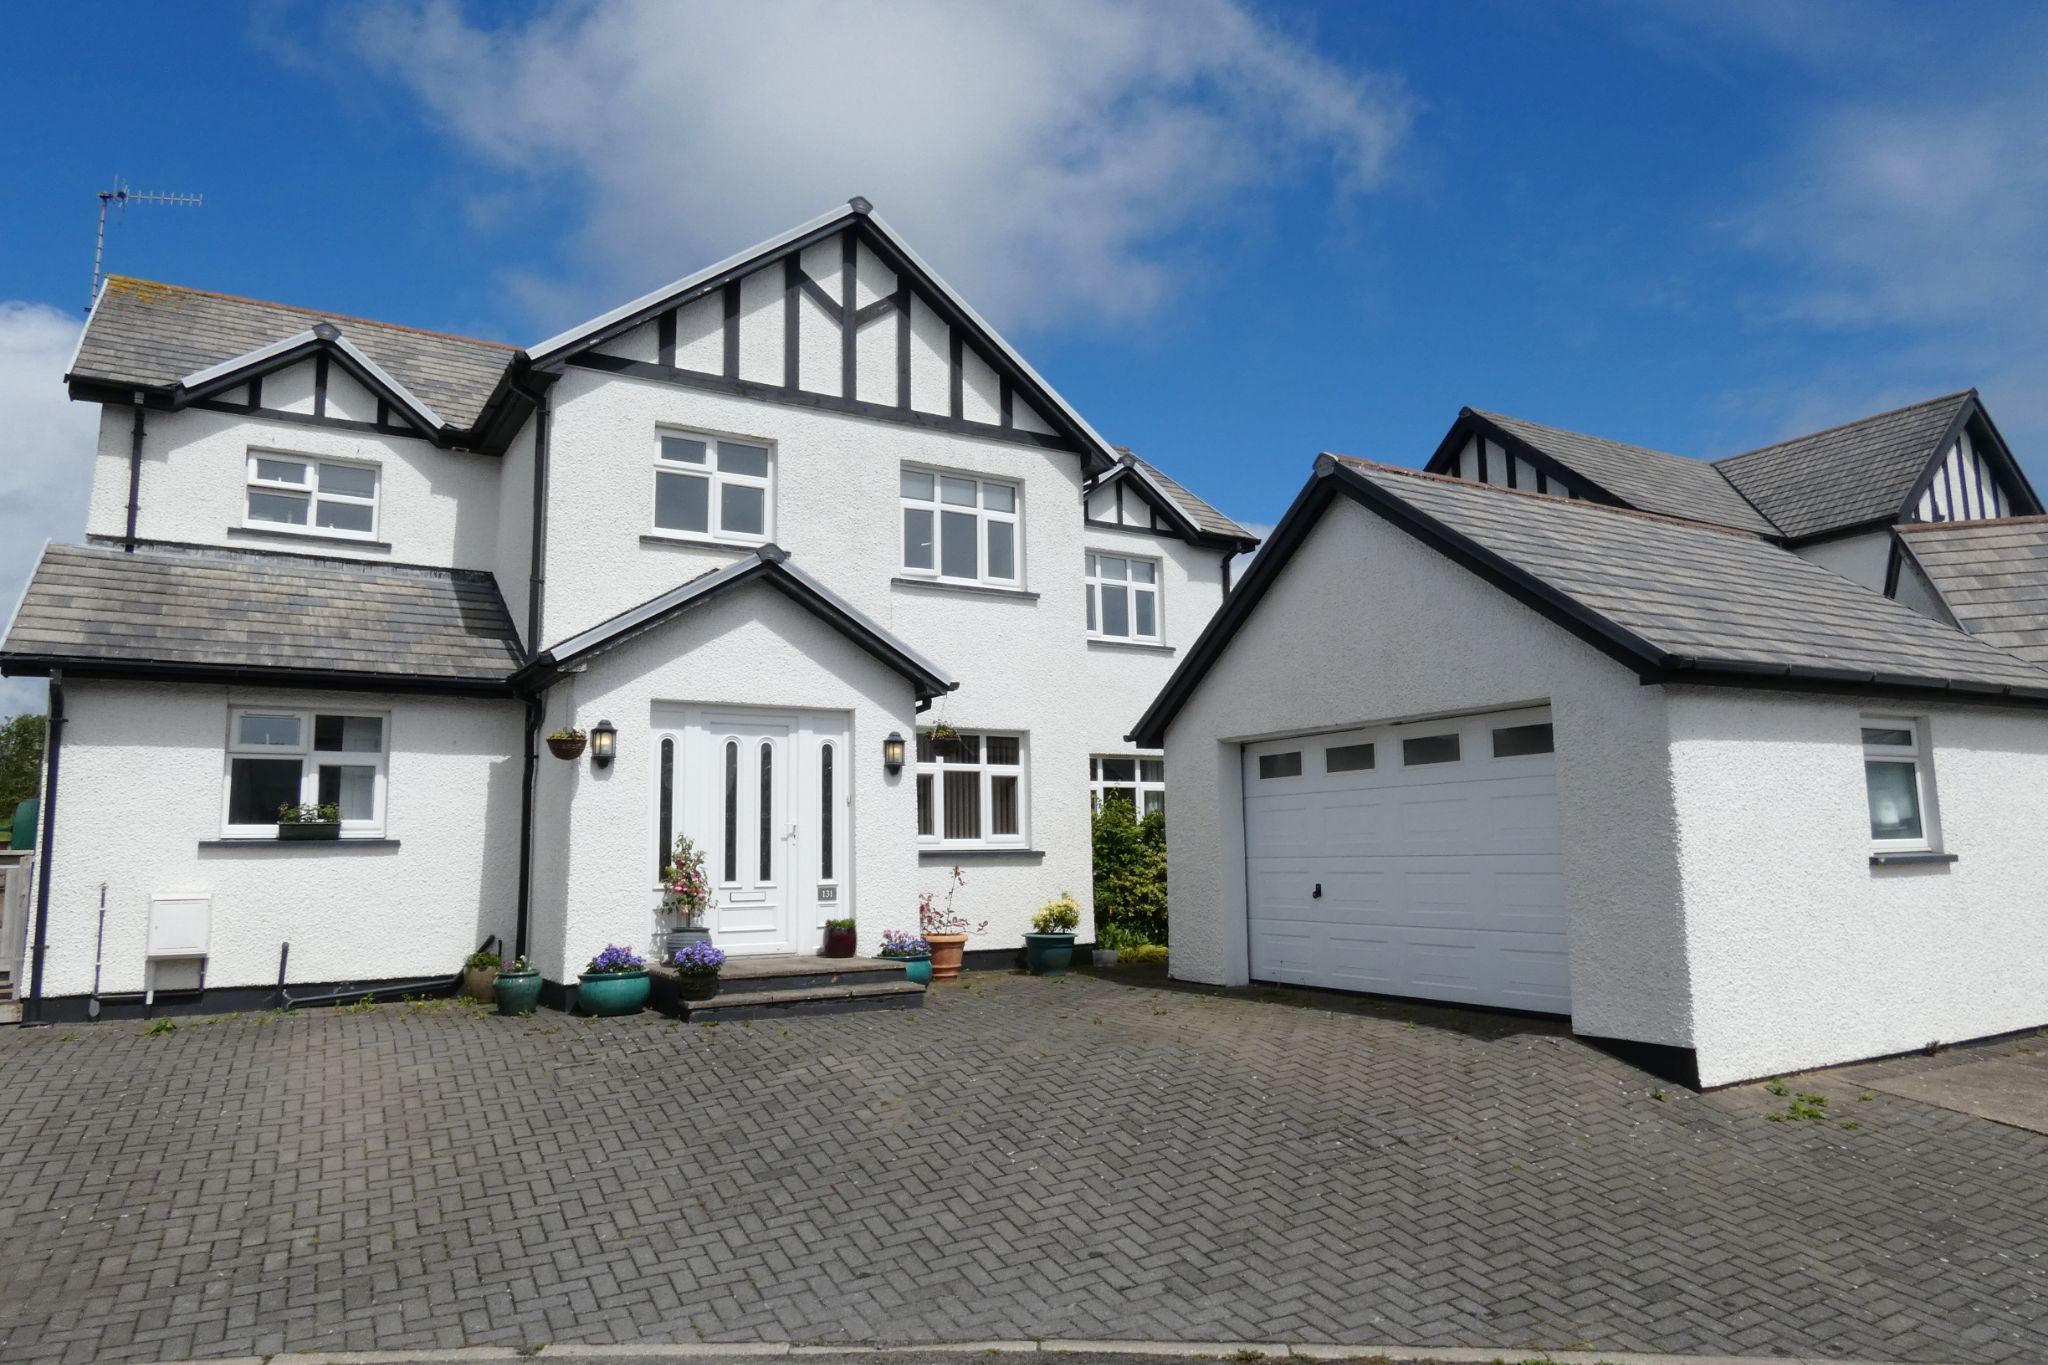 5 bedroom detached house For Sale in Santon - Photograph 36